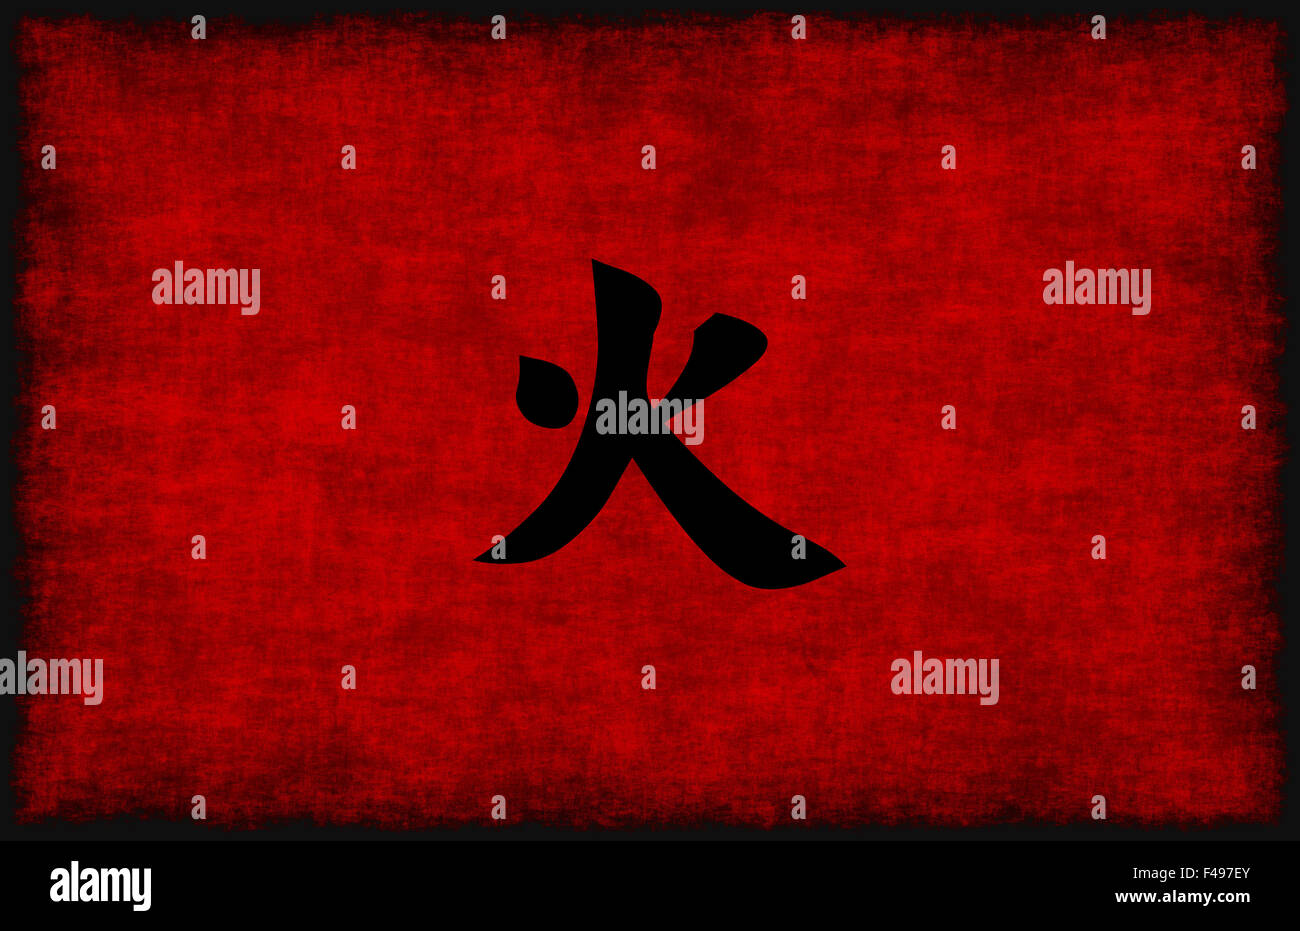 Chinese Calligraphy Symbol For Fire Element In Red And Black Stock